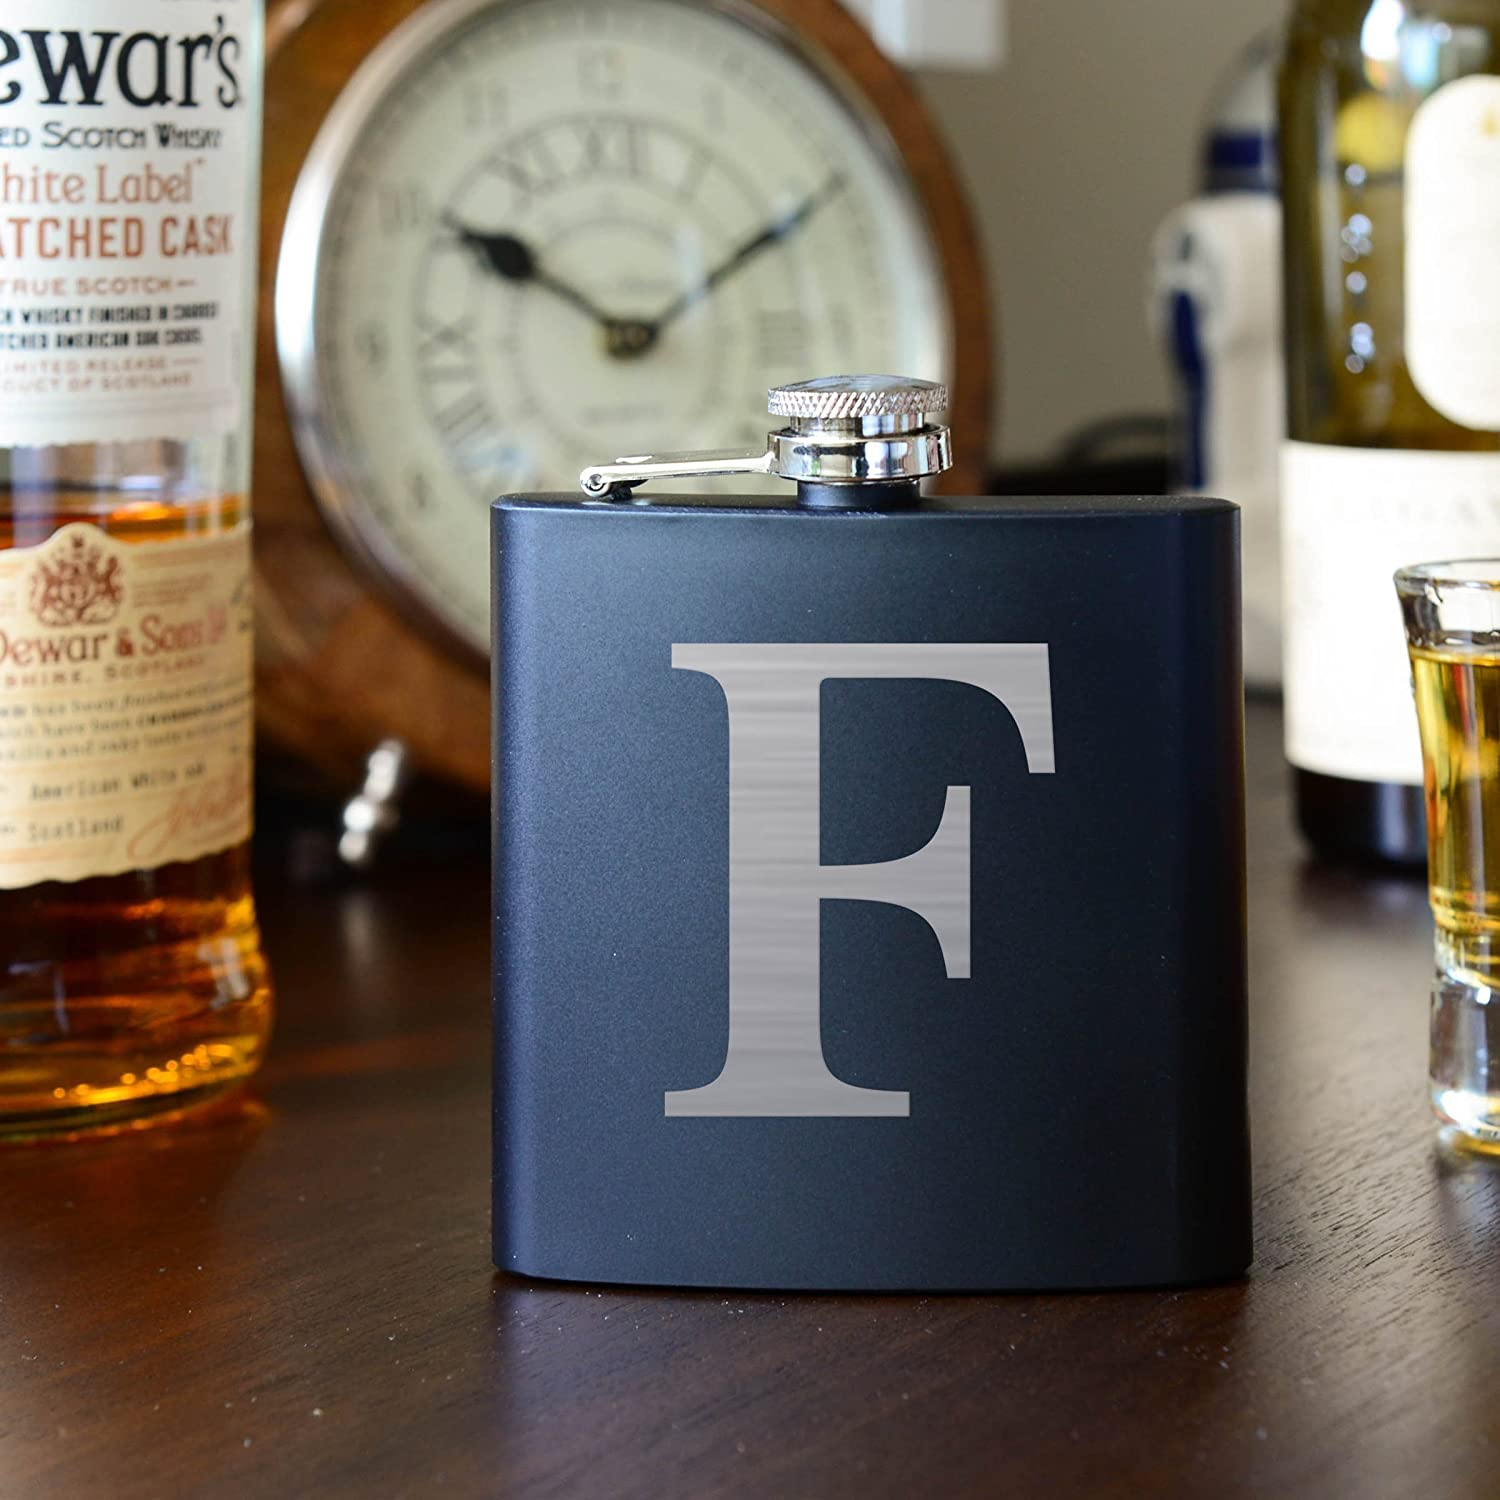 Personalized Initial Flask - 6oz Stainless Steel Flask Engraved - Groomsman Flask, Birthday Flask, Best Man Gift Custom Engraved Flask, Groomsmen Wedding Party Gift by Factory eNova